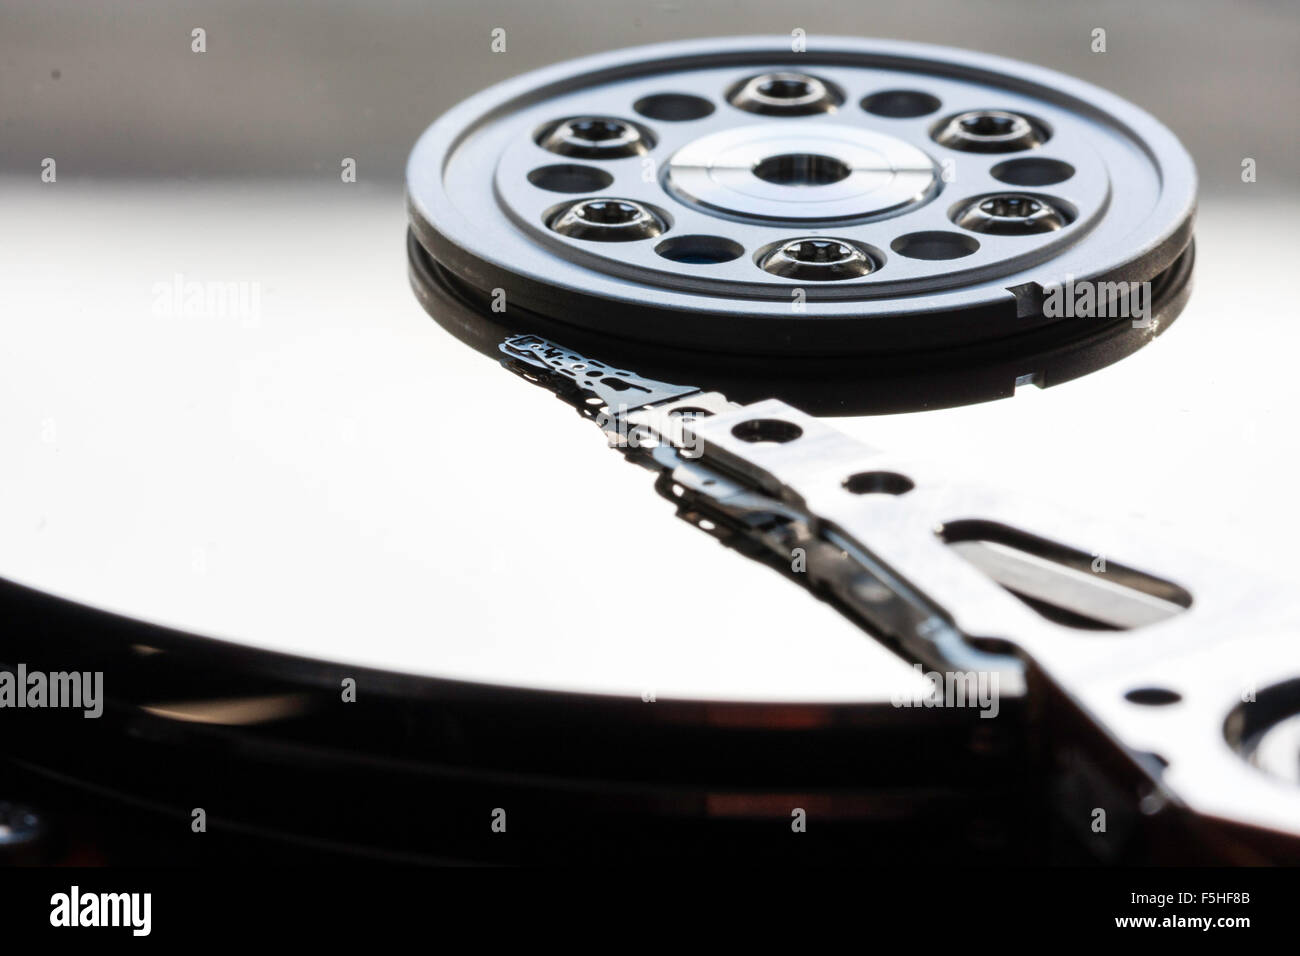 Interior of computer hard drive. Actuator arm with read and write heads over the platter and disk. Macro close up. - Stock Image